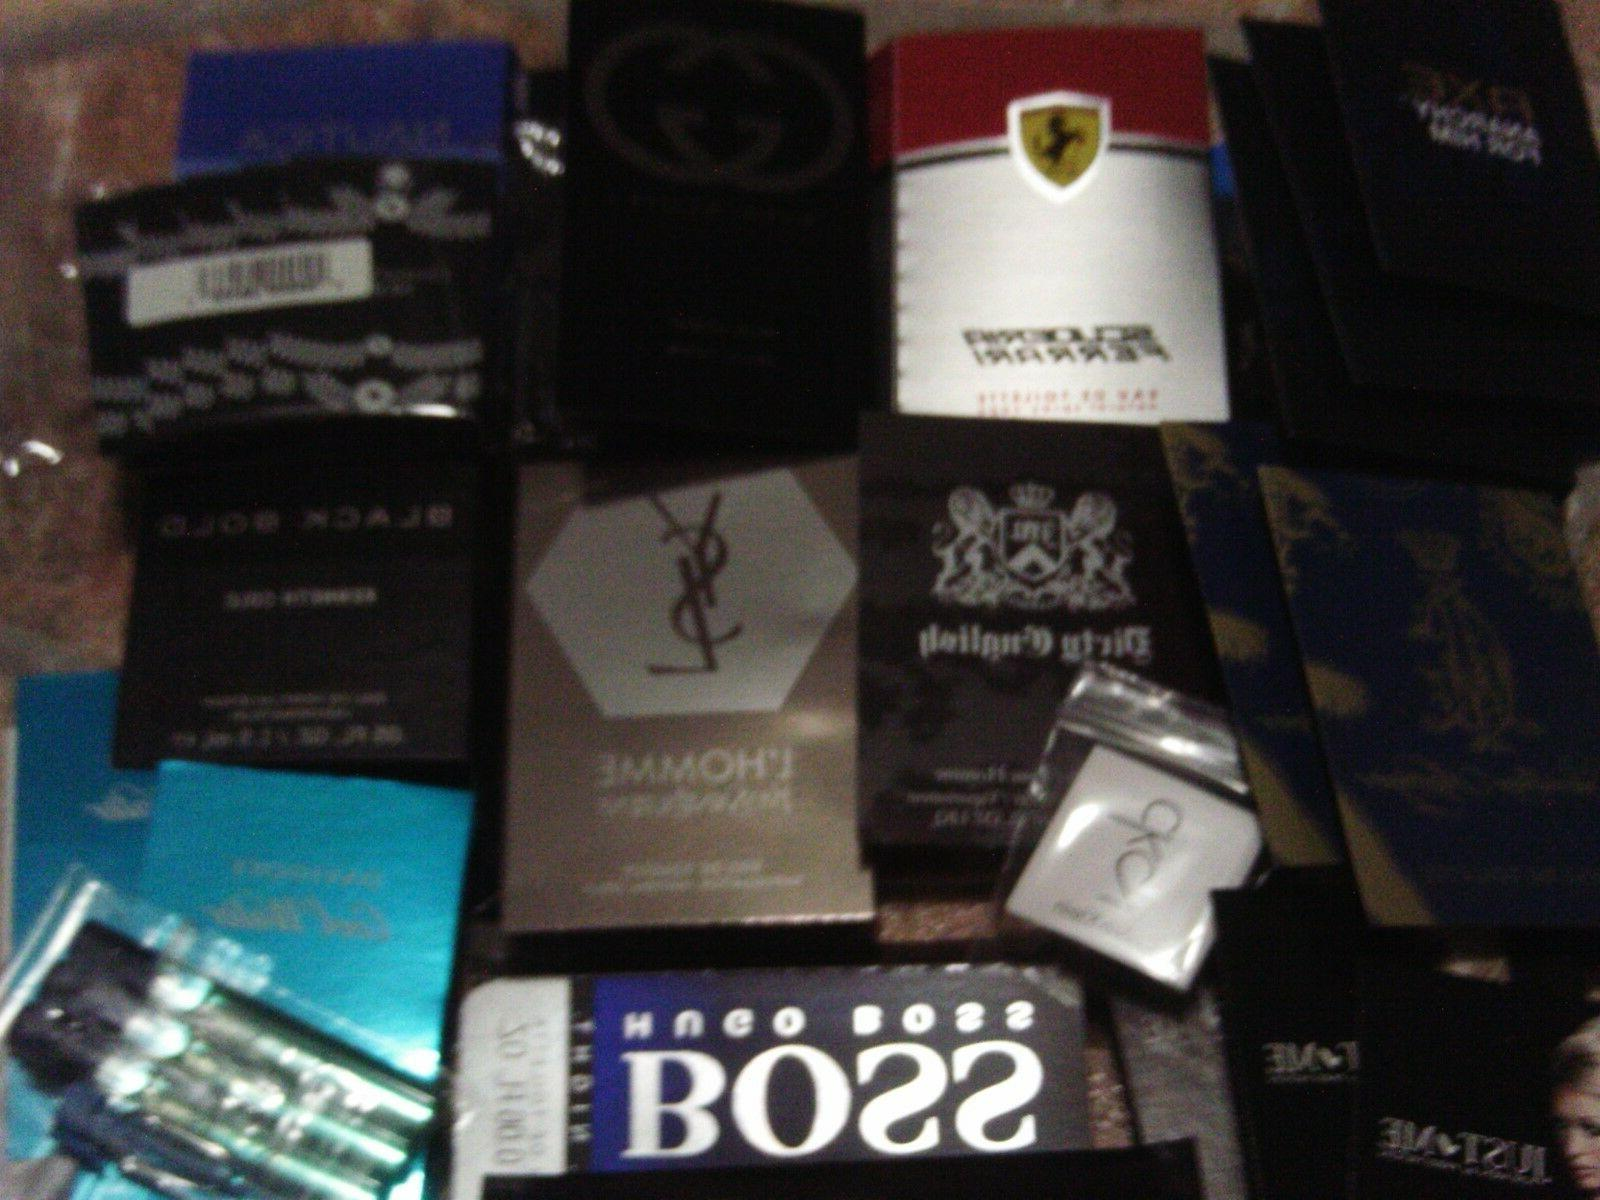 LOT OF 30 MENS COLOGNE SAMPLES - DESIGNER BRAND VERY NICE-po